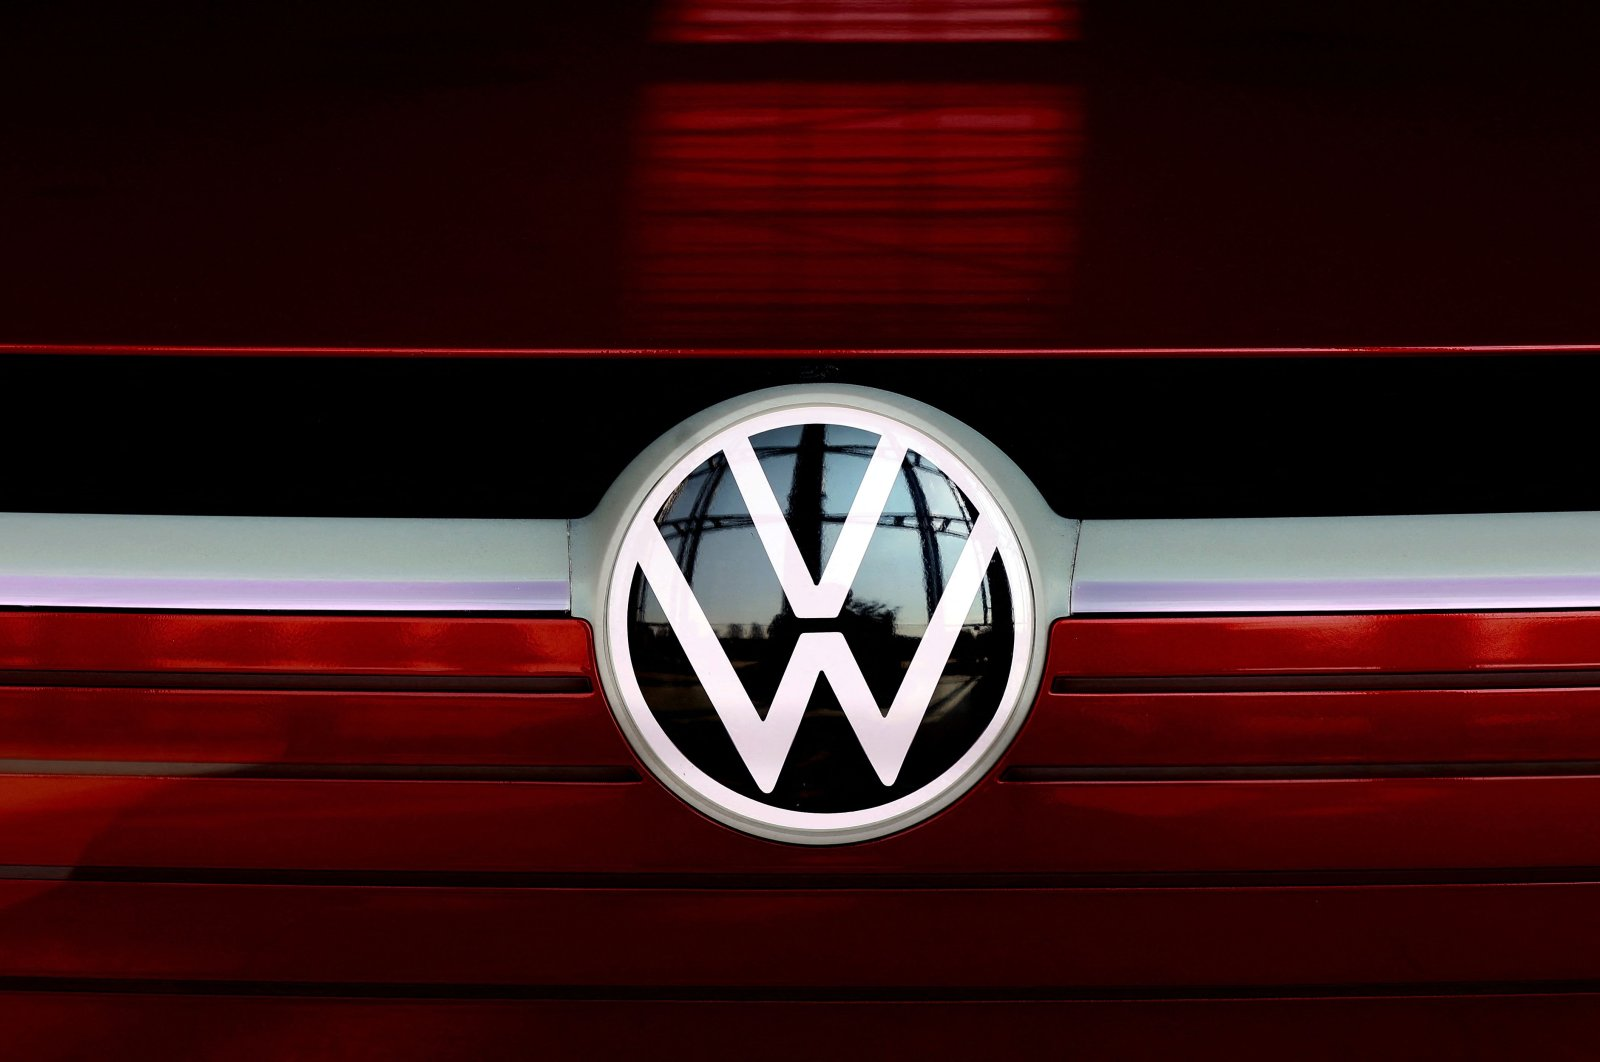 The VW logo is on display at the headquarters of German carmaker Volkswagen (VW) in Wolfsburg, Germany, March 26, 2021. (AFP Photo)